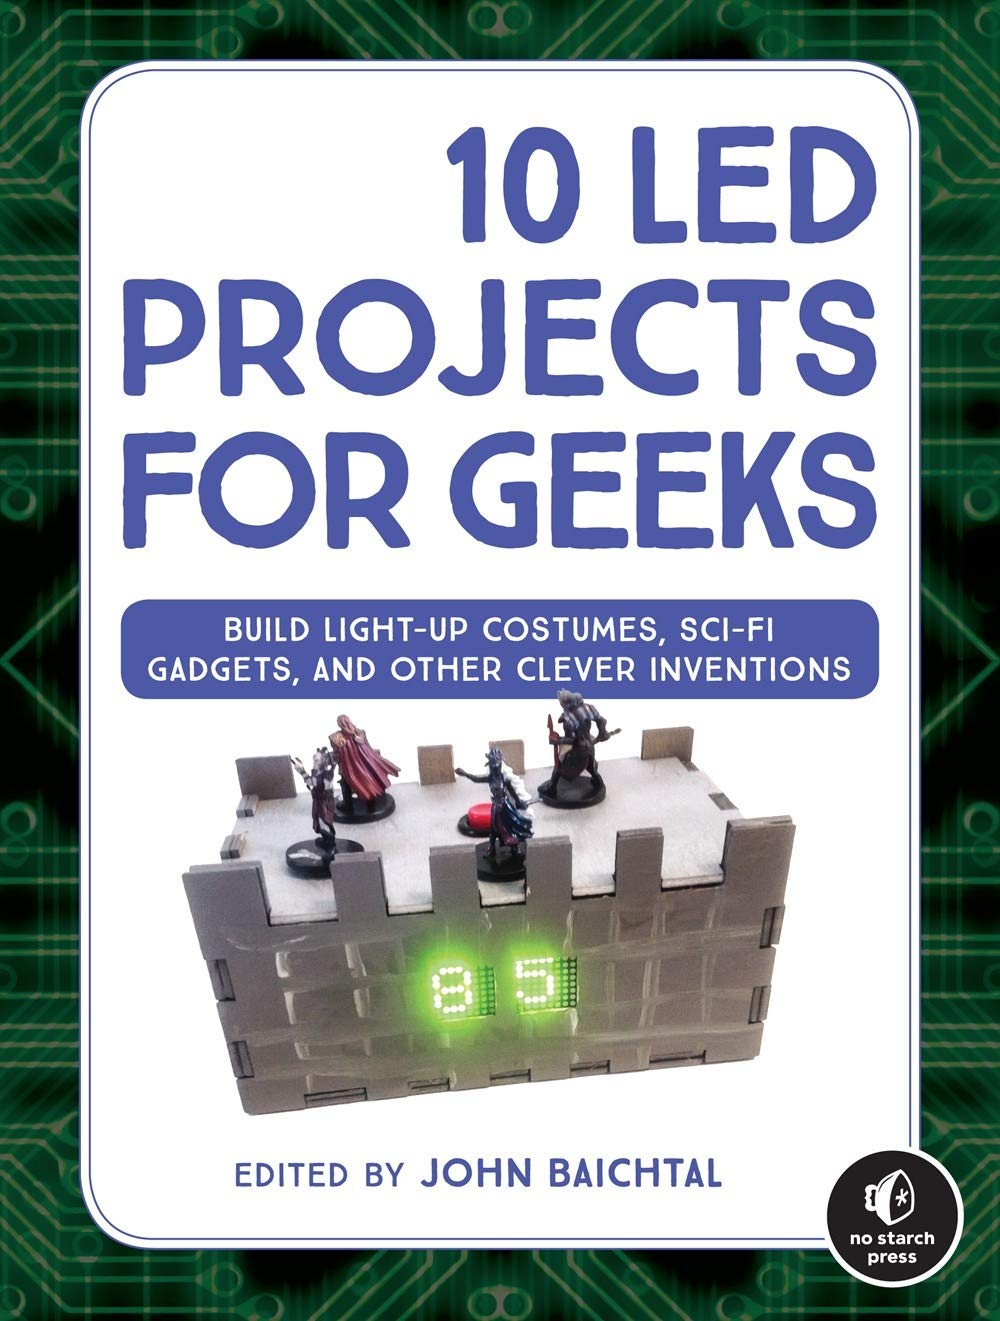 10 Led Projects For Geeks Build Light Up Costumes Sci Fi Gadgets Circuits And Blog Circuit Other Clever Inventions John Baichtal 9781593278250 Books